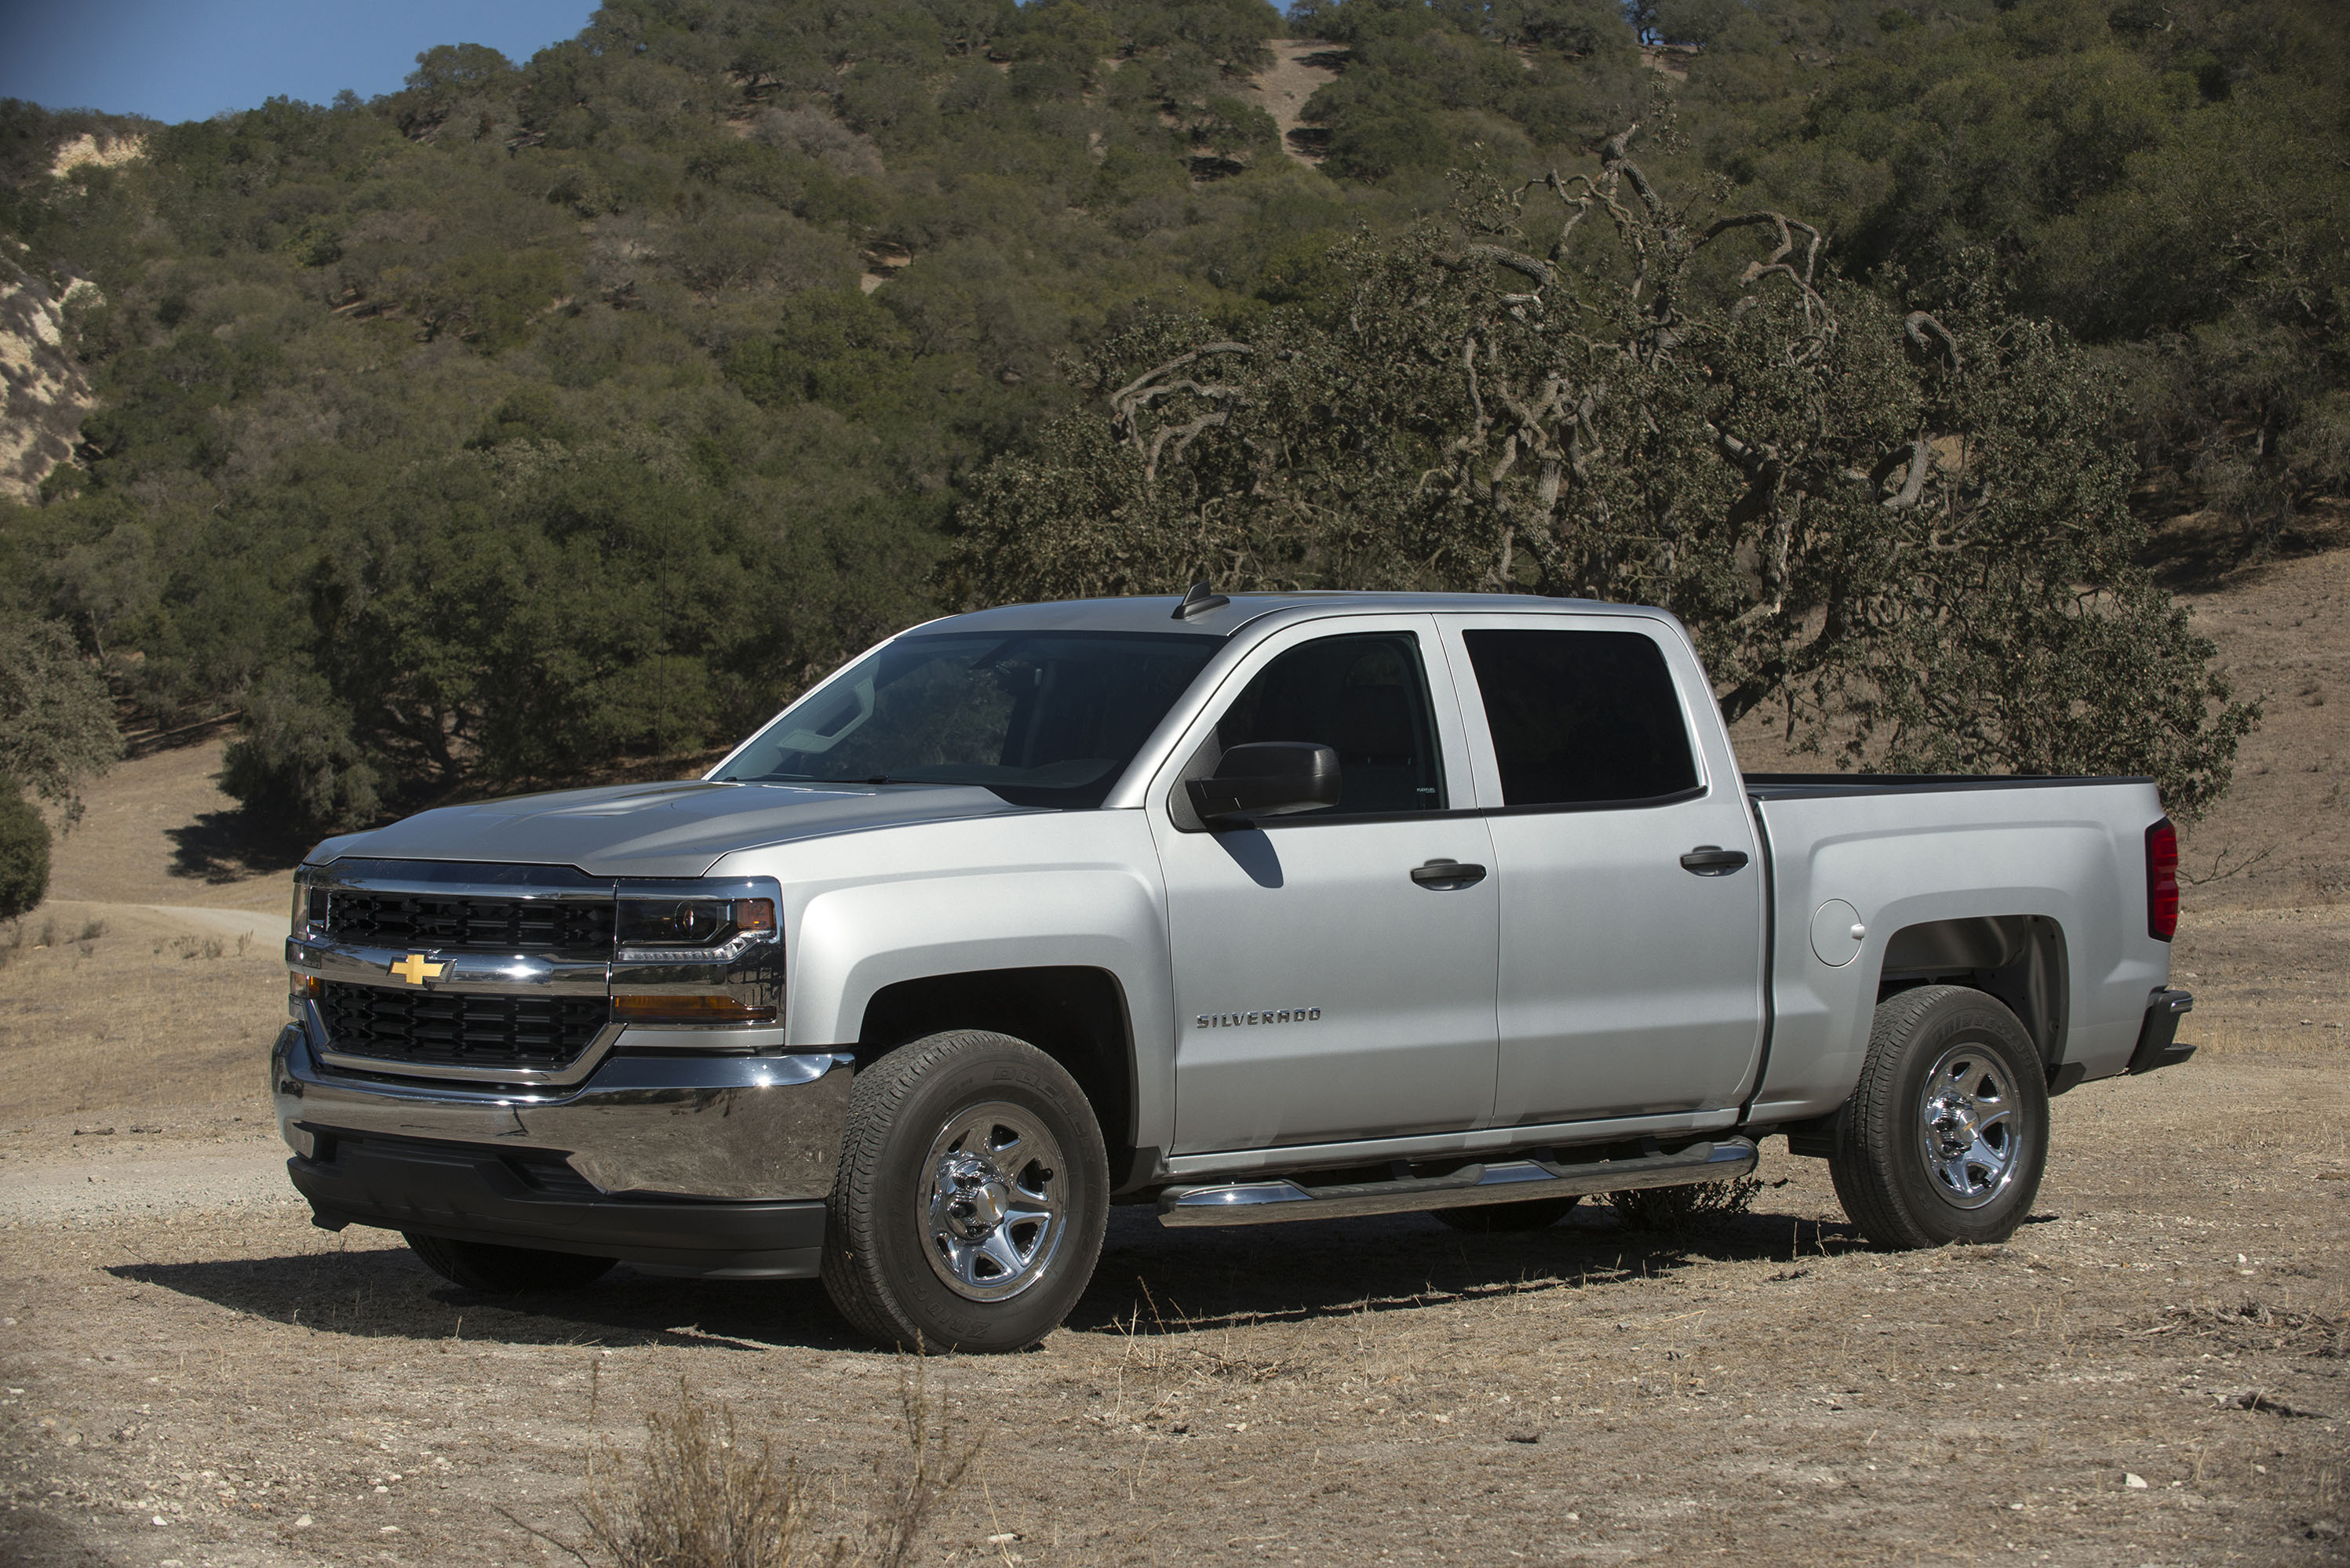 2018 Chevrolet Silverado 1500 Chevy Review Ratings Specs Prices And Photos The Car Connection